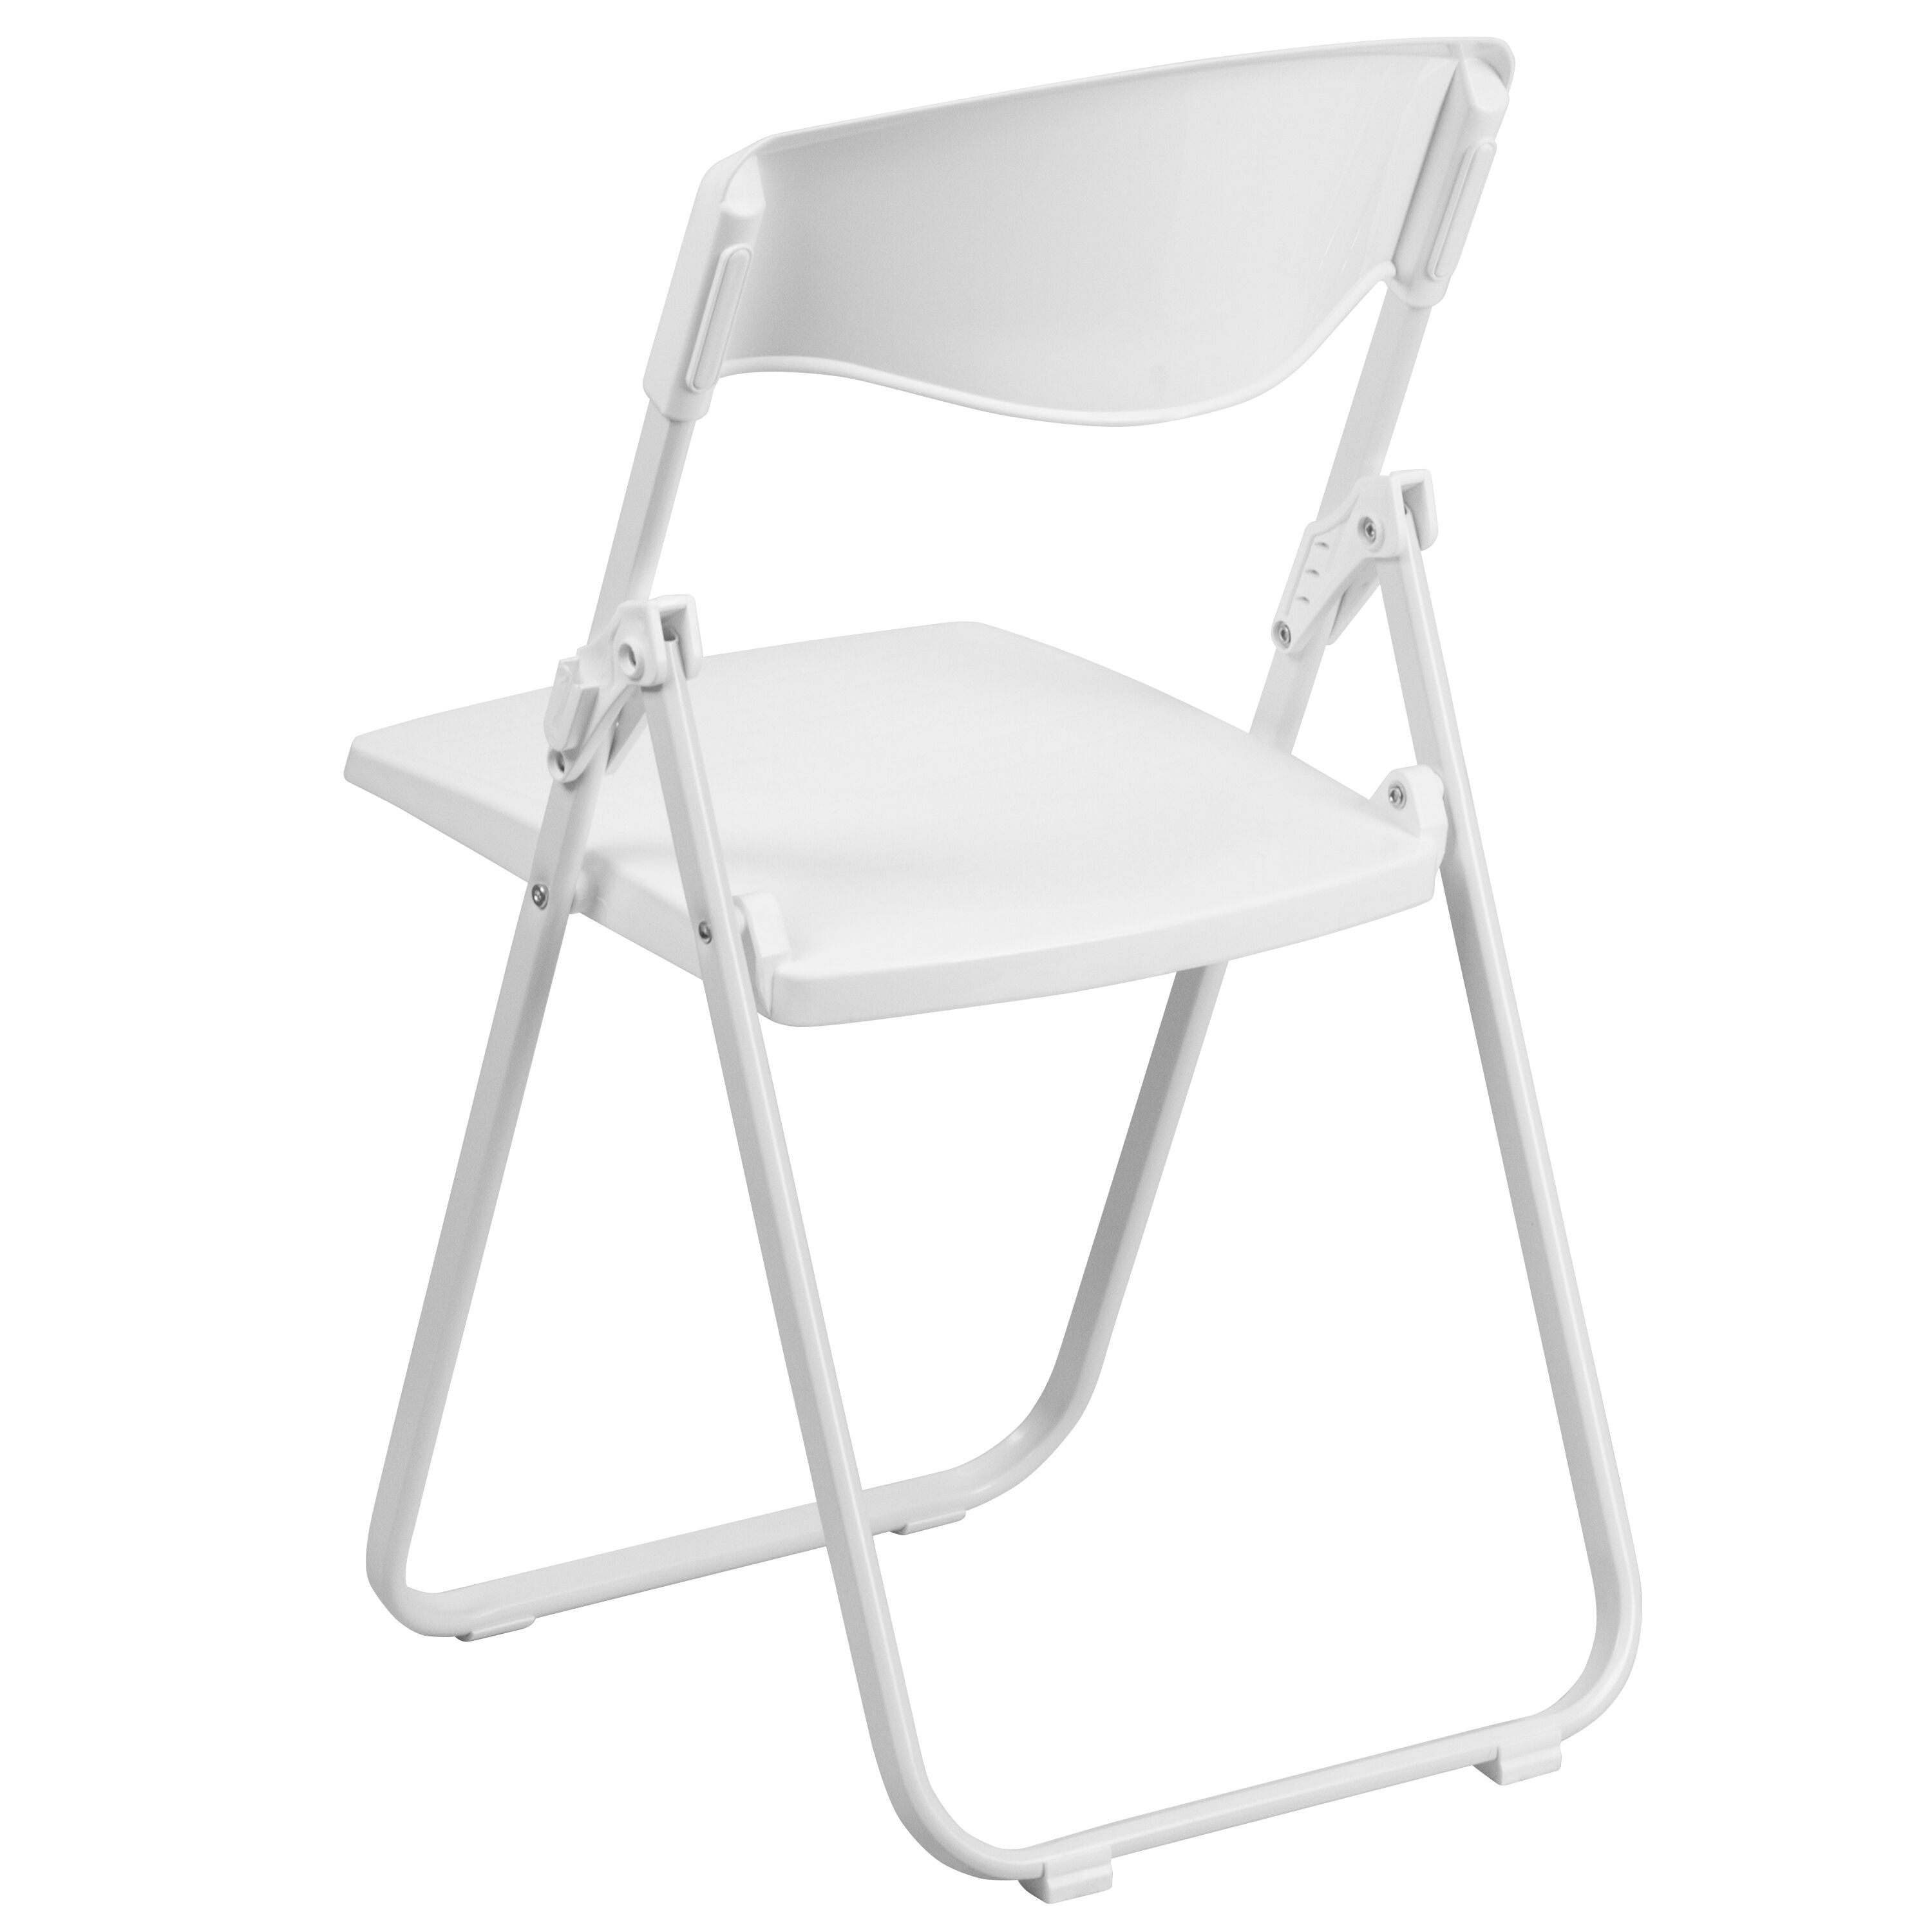 Capacity Heavy Duty White Plastic Folding Chair With Built  ...